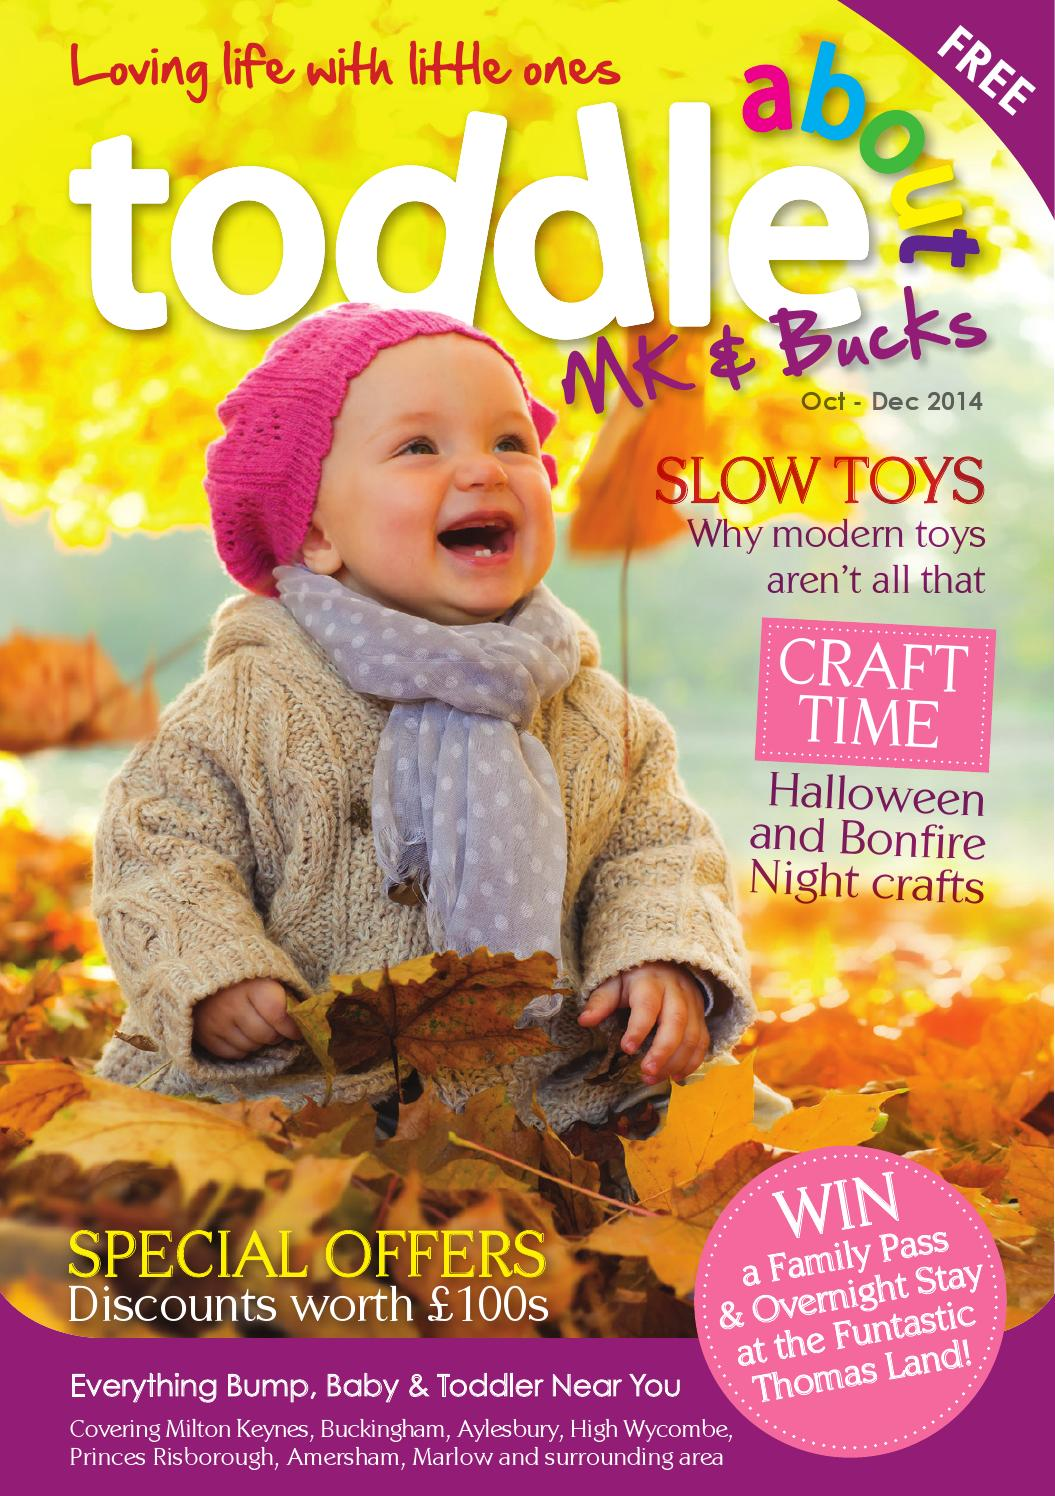 4b6ab0fa6d19 Toddle About MK & Bucks Oct - Dec 2014 by Toddle About - issuu